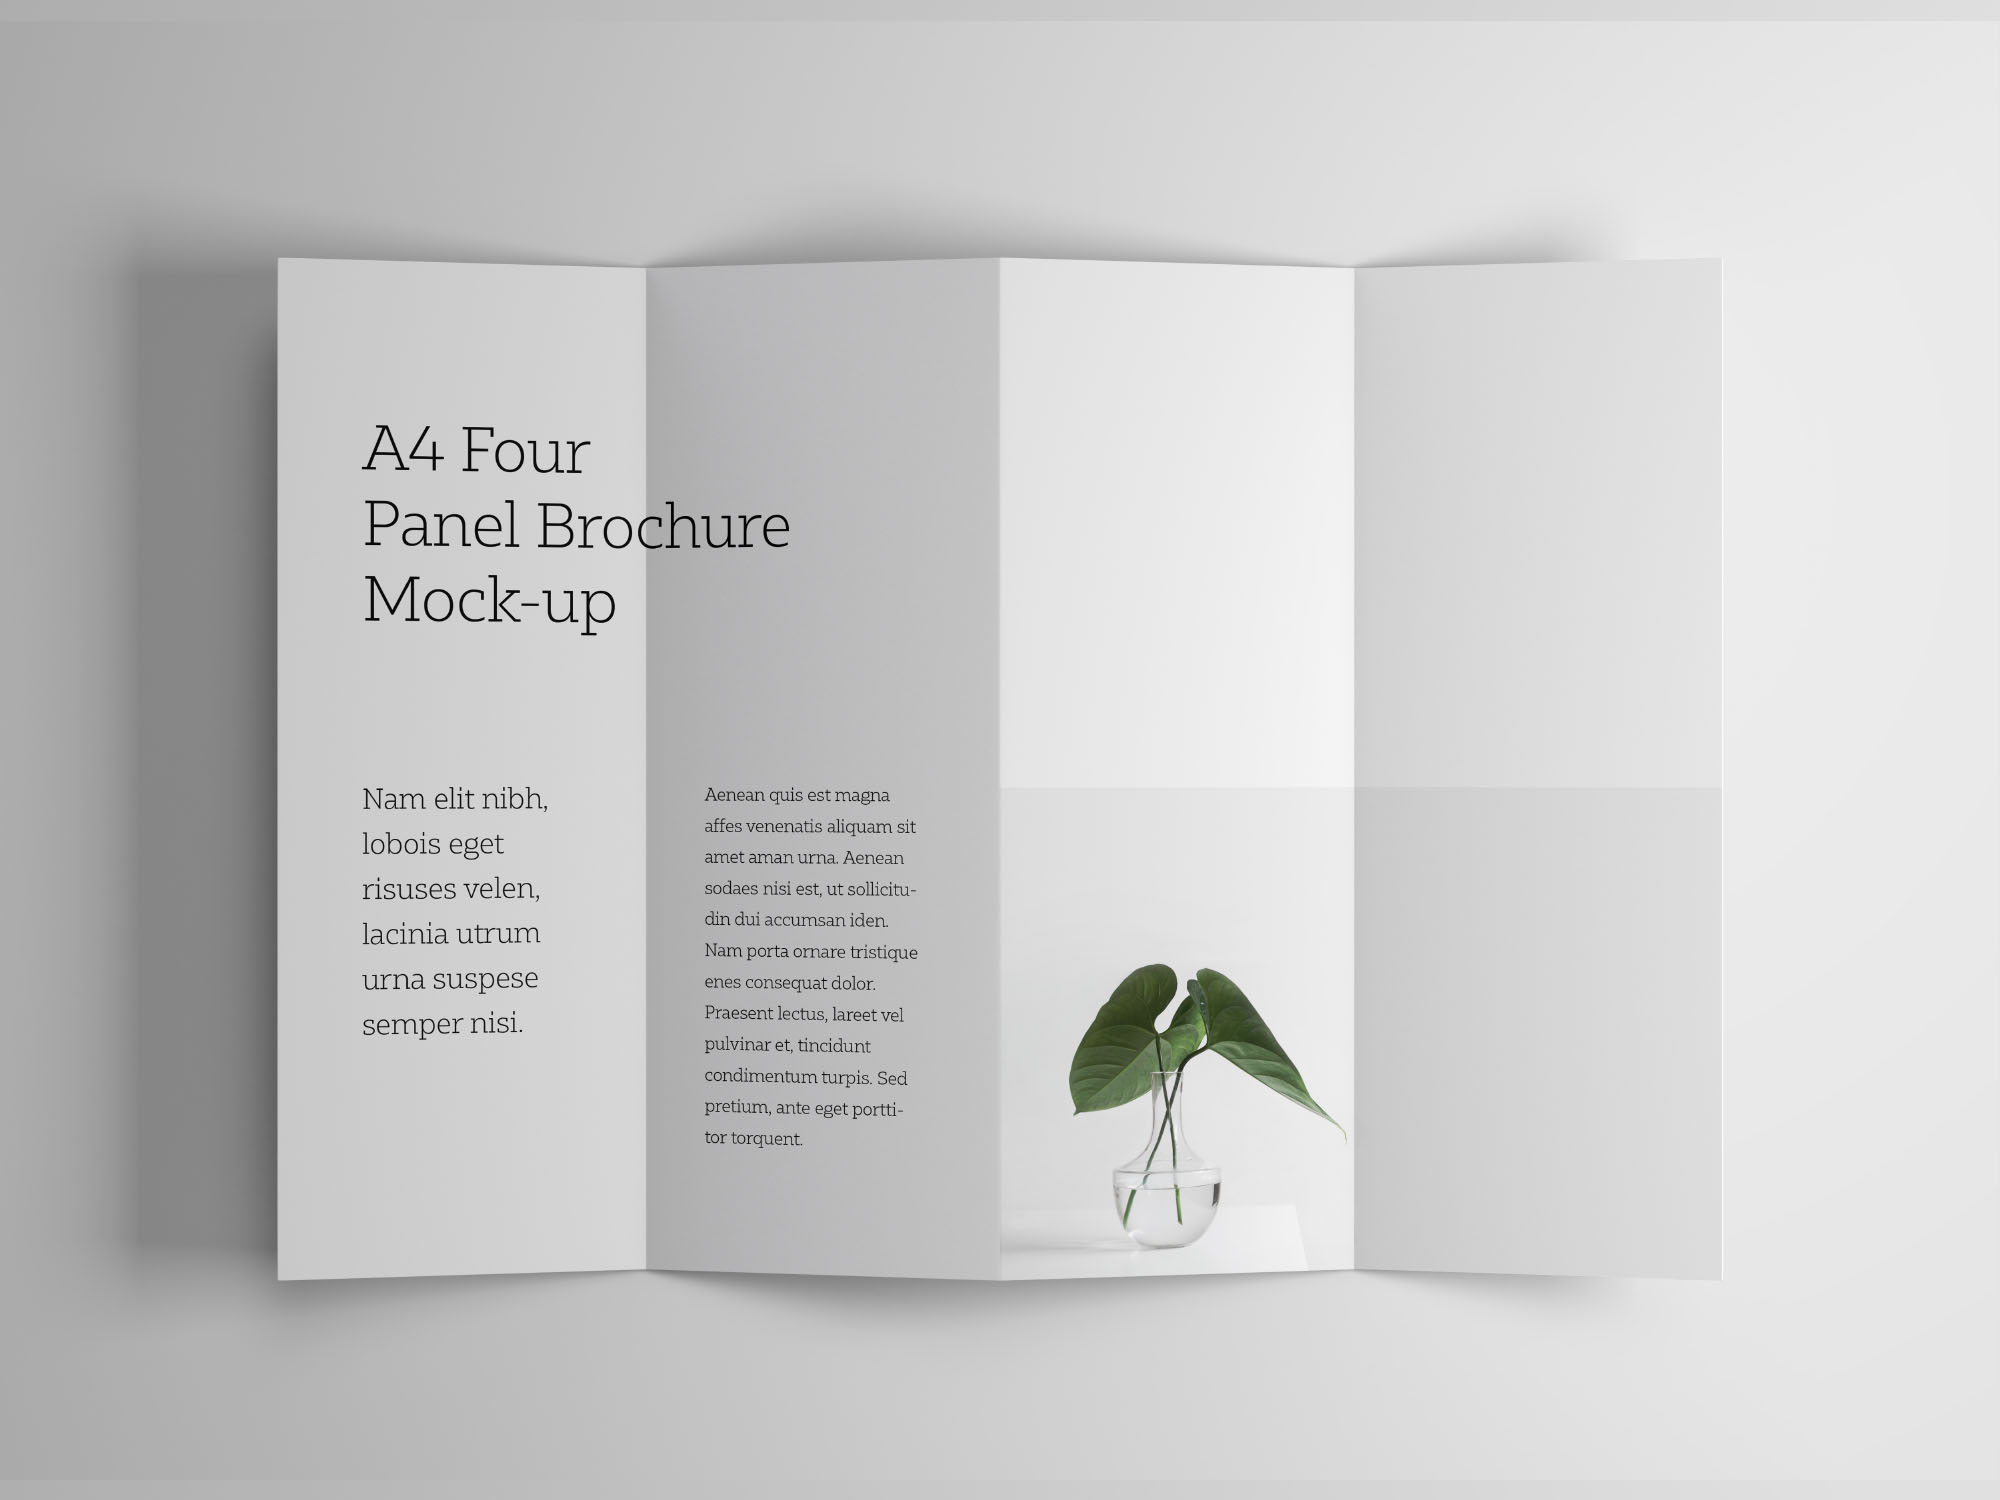 Umbrella Photoshop Mockup Free A4 Four Panel Brochure Mockup